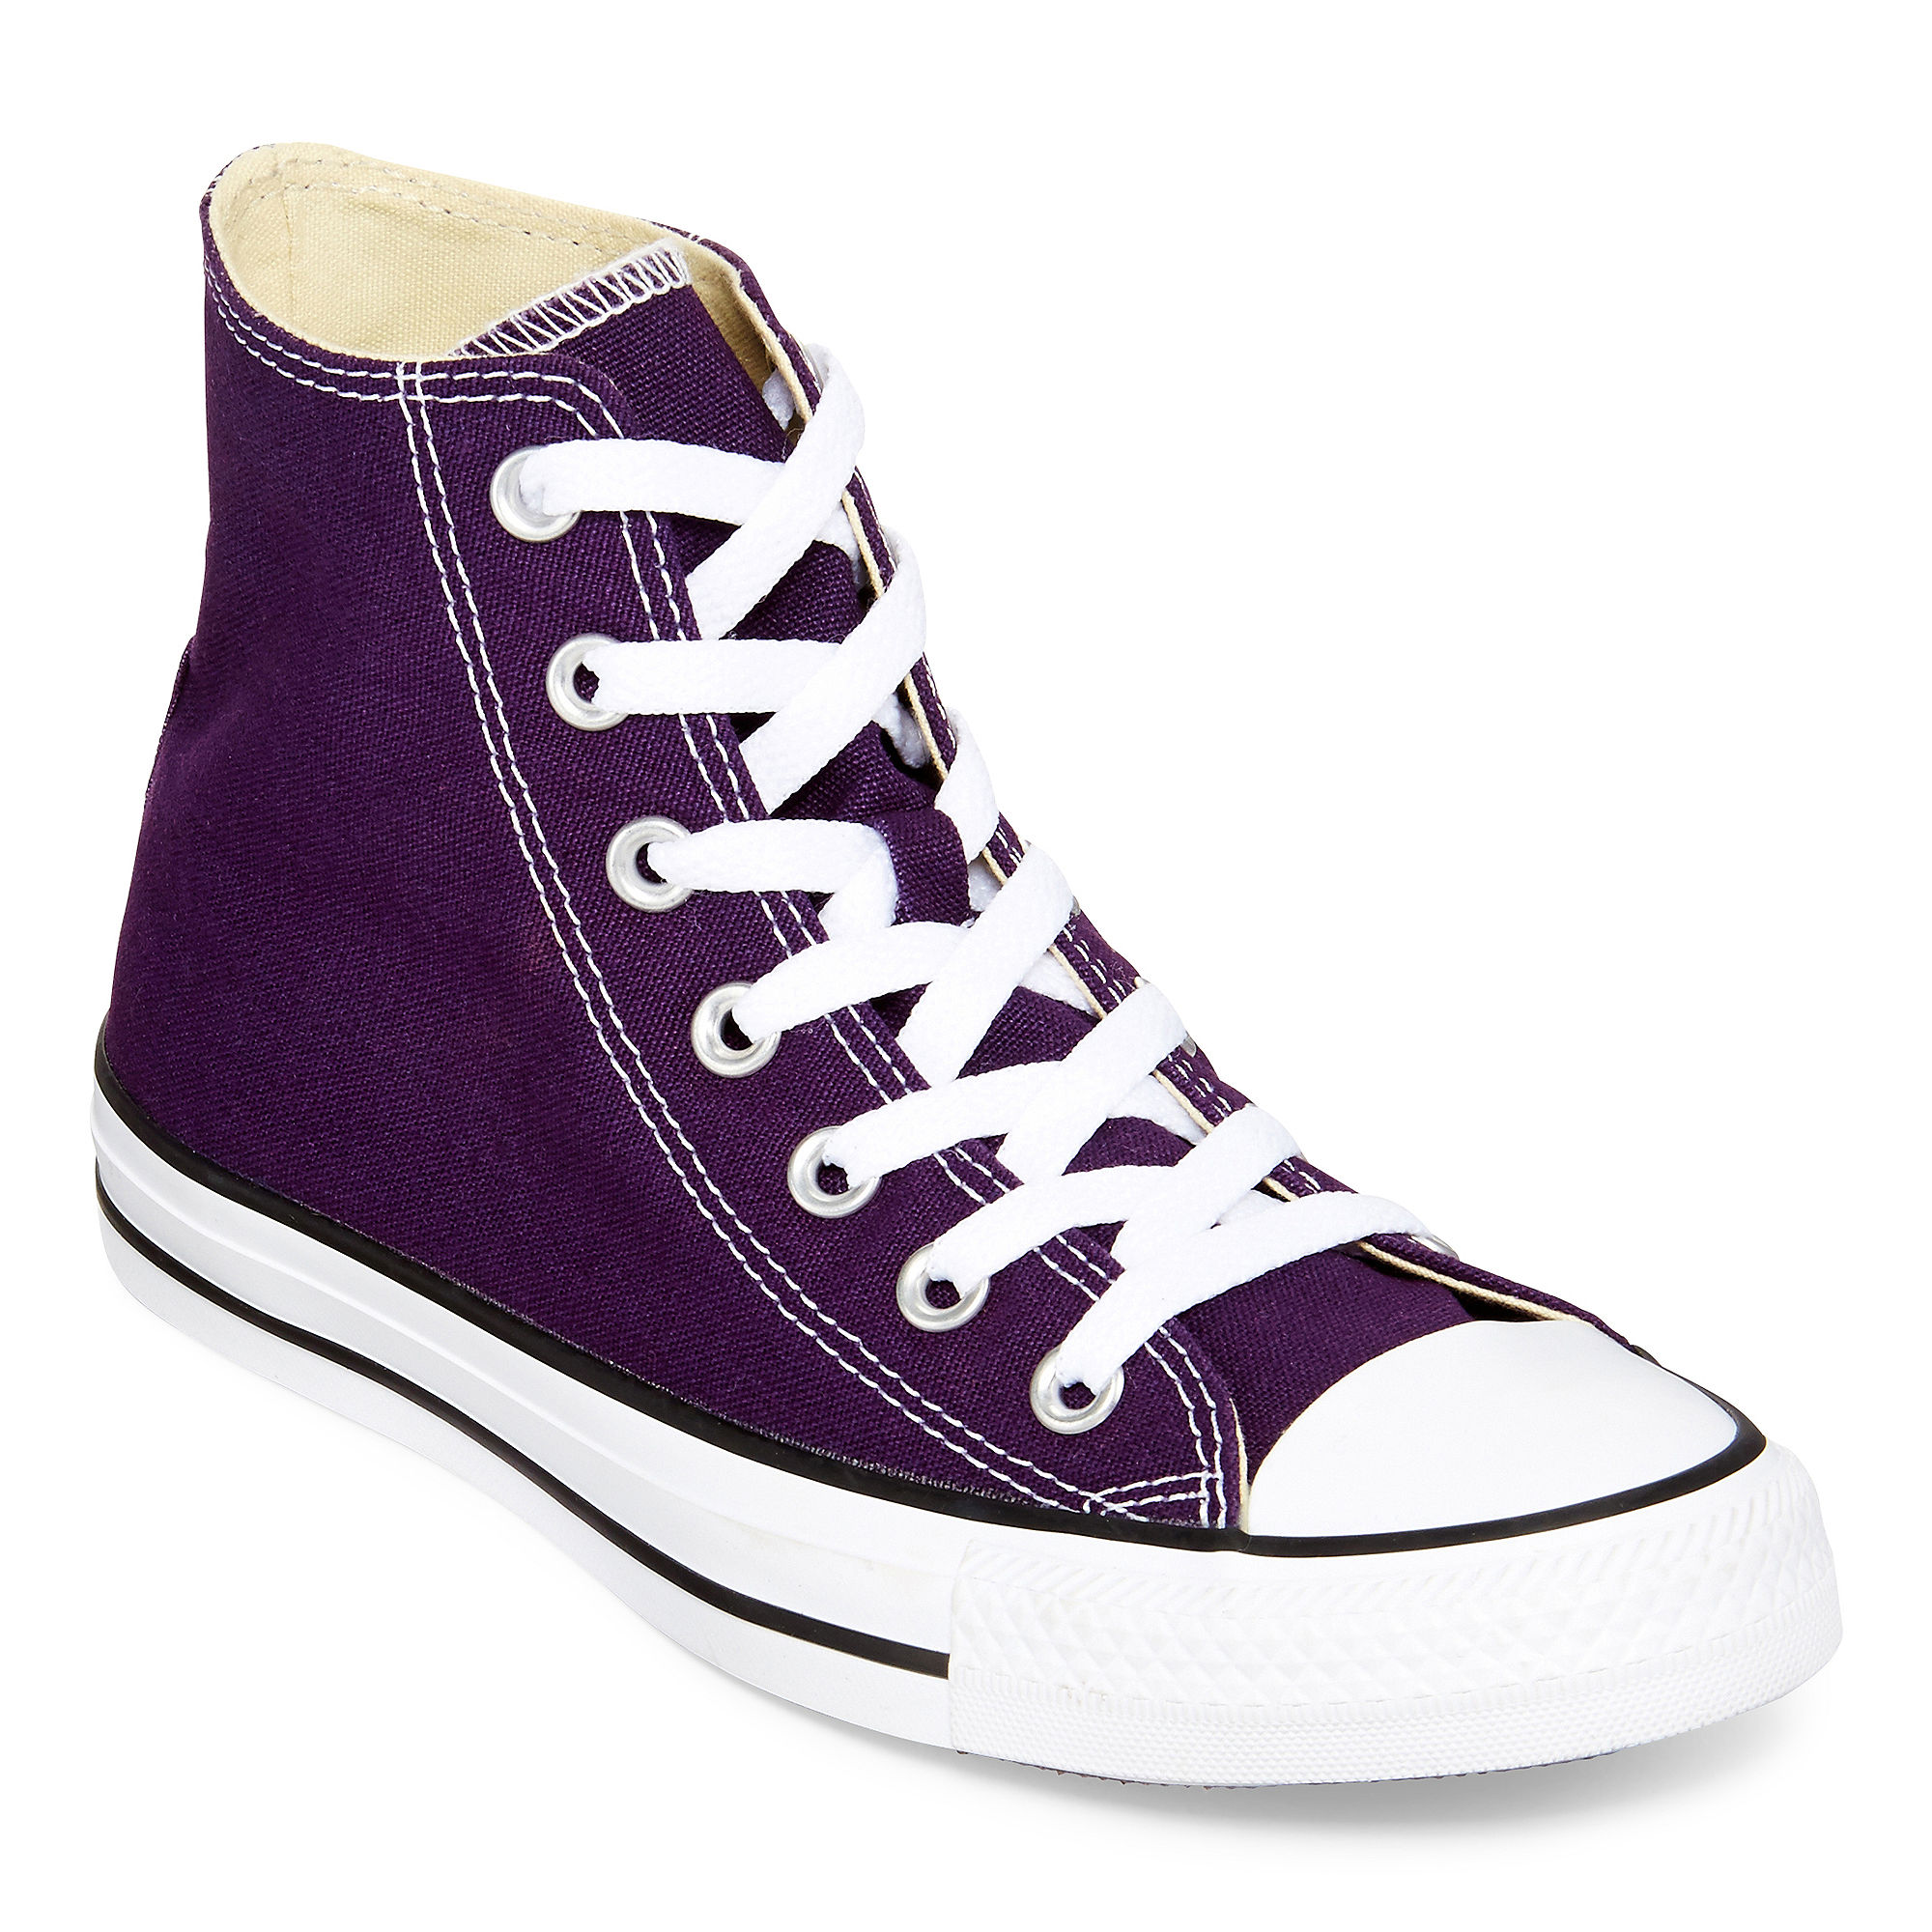 59b0864c46bf65 ... Converse Chuck Taylor All Star High-Top Sneakers- Unisex Sizing. UPC  886956166669